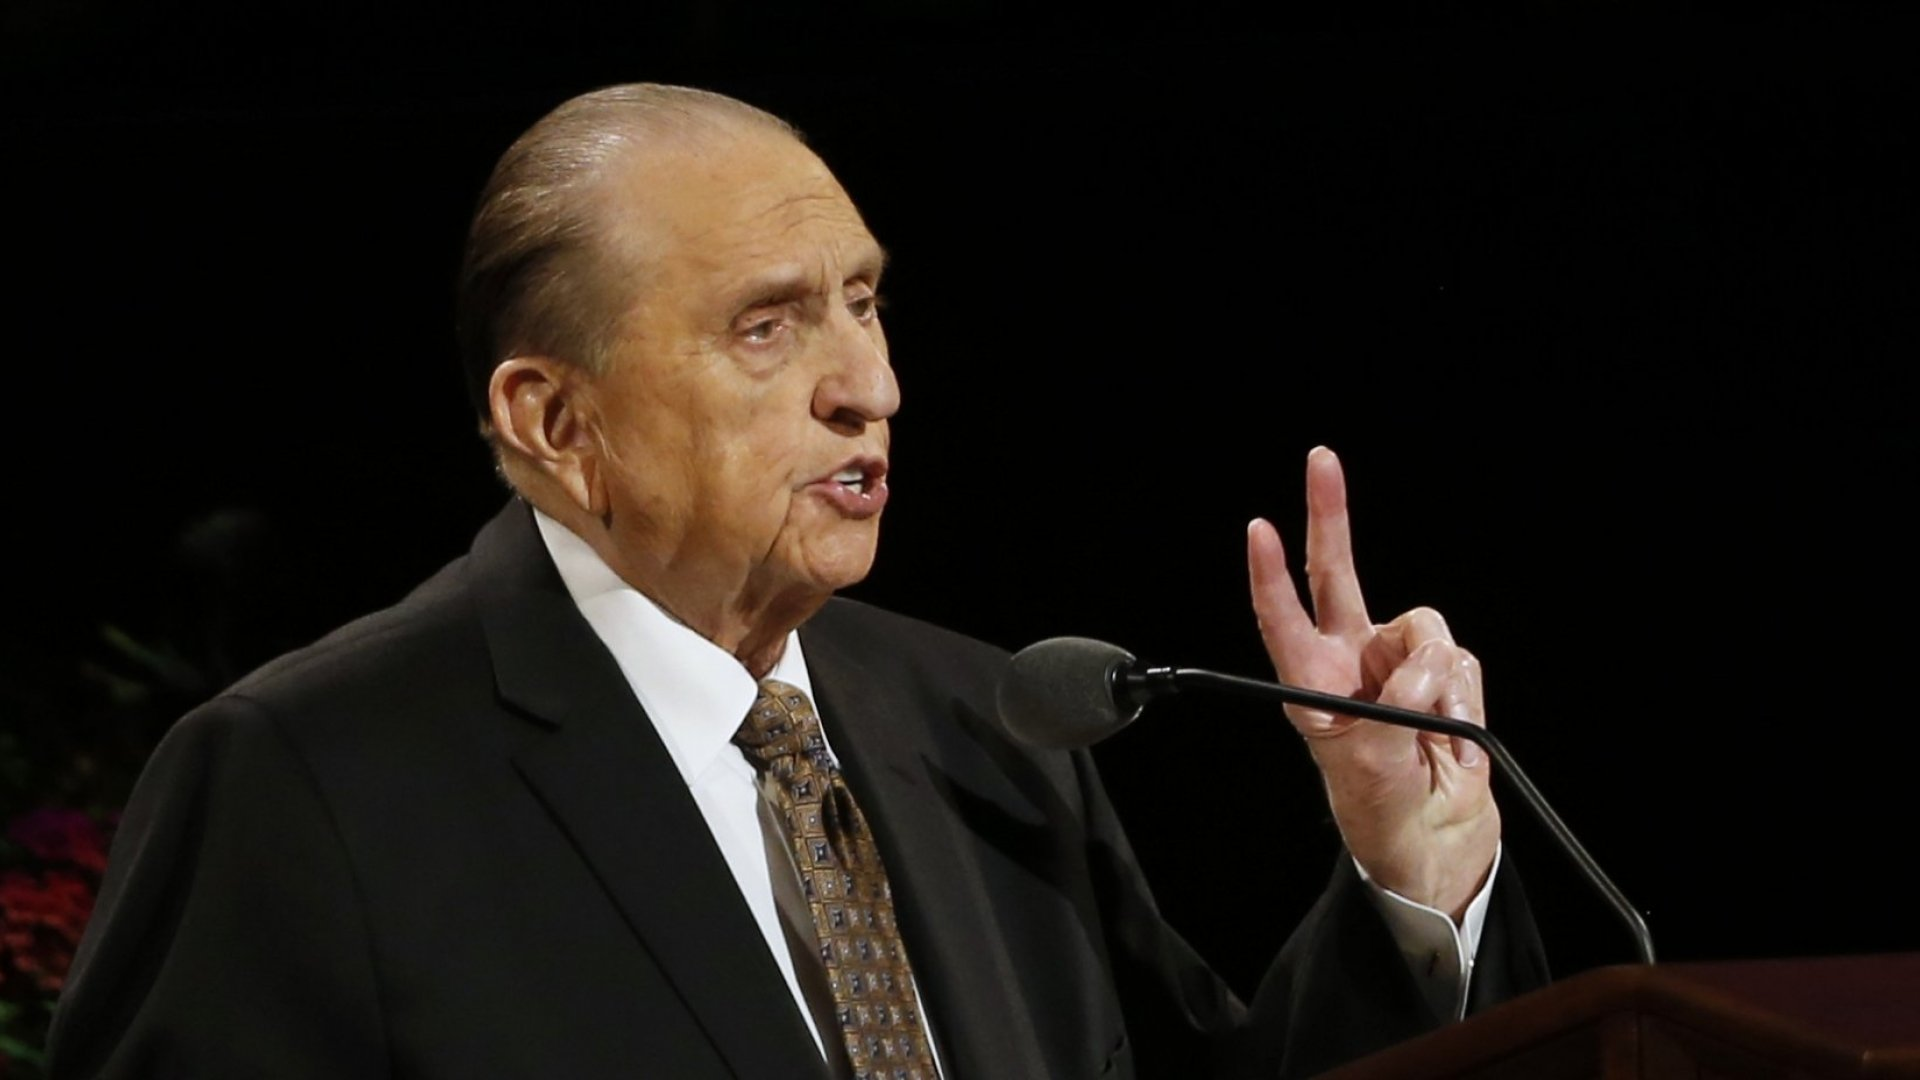 5 Lessons in Leadership from Mormon Church President Thomas S. Monson